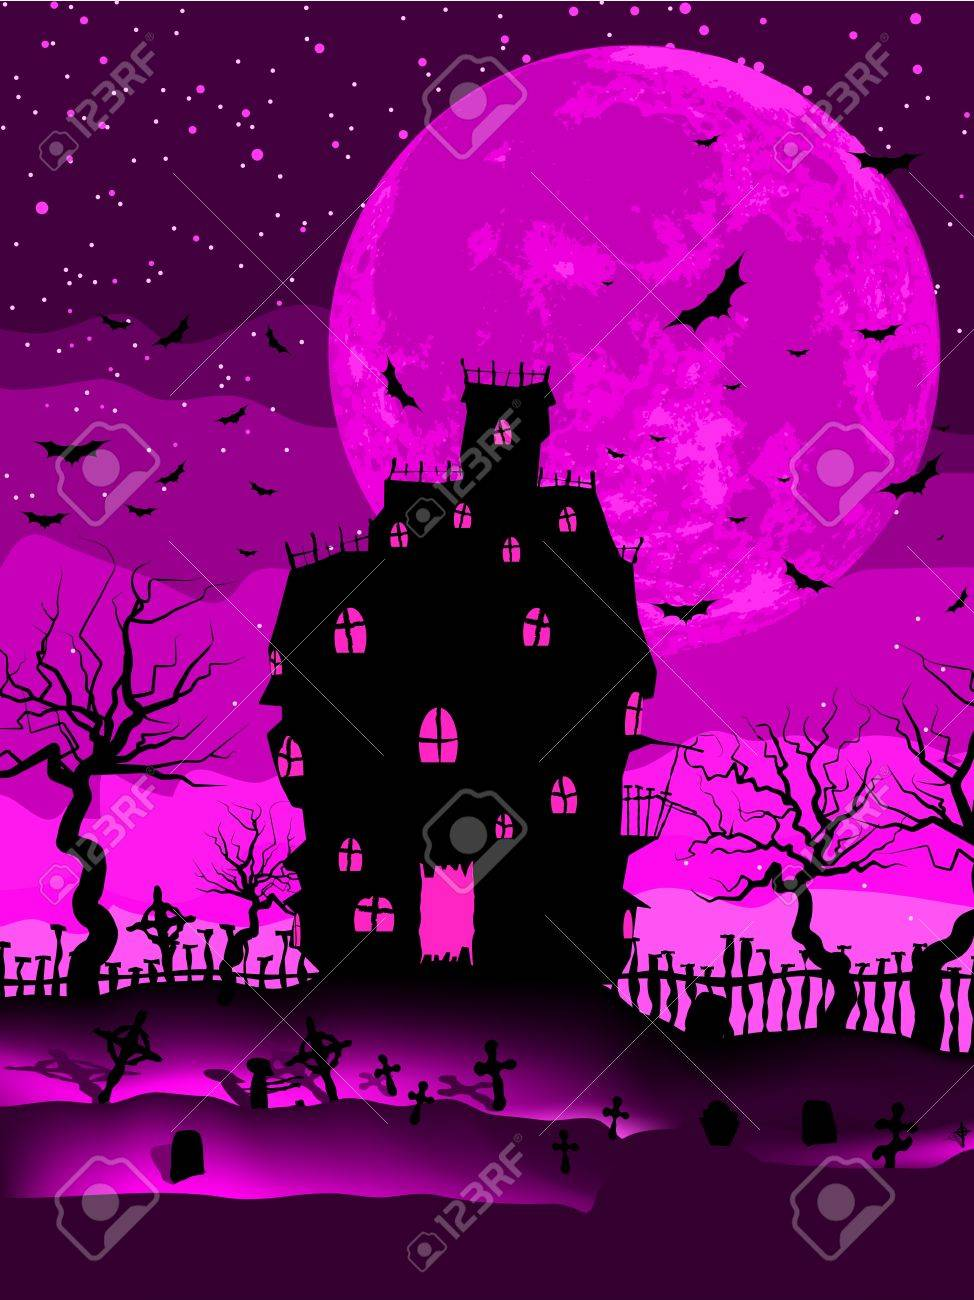 Scary halloween vector with magical abbey  EPS 8 vector file included Stock Vector - 15088267